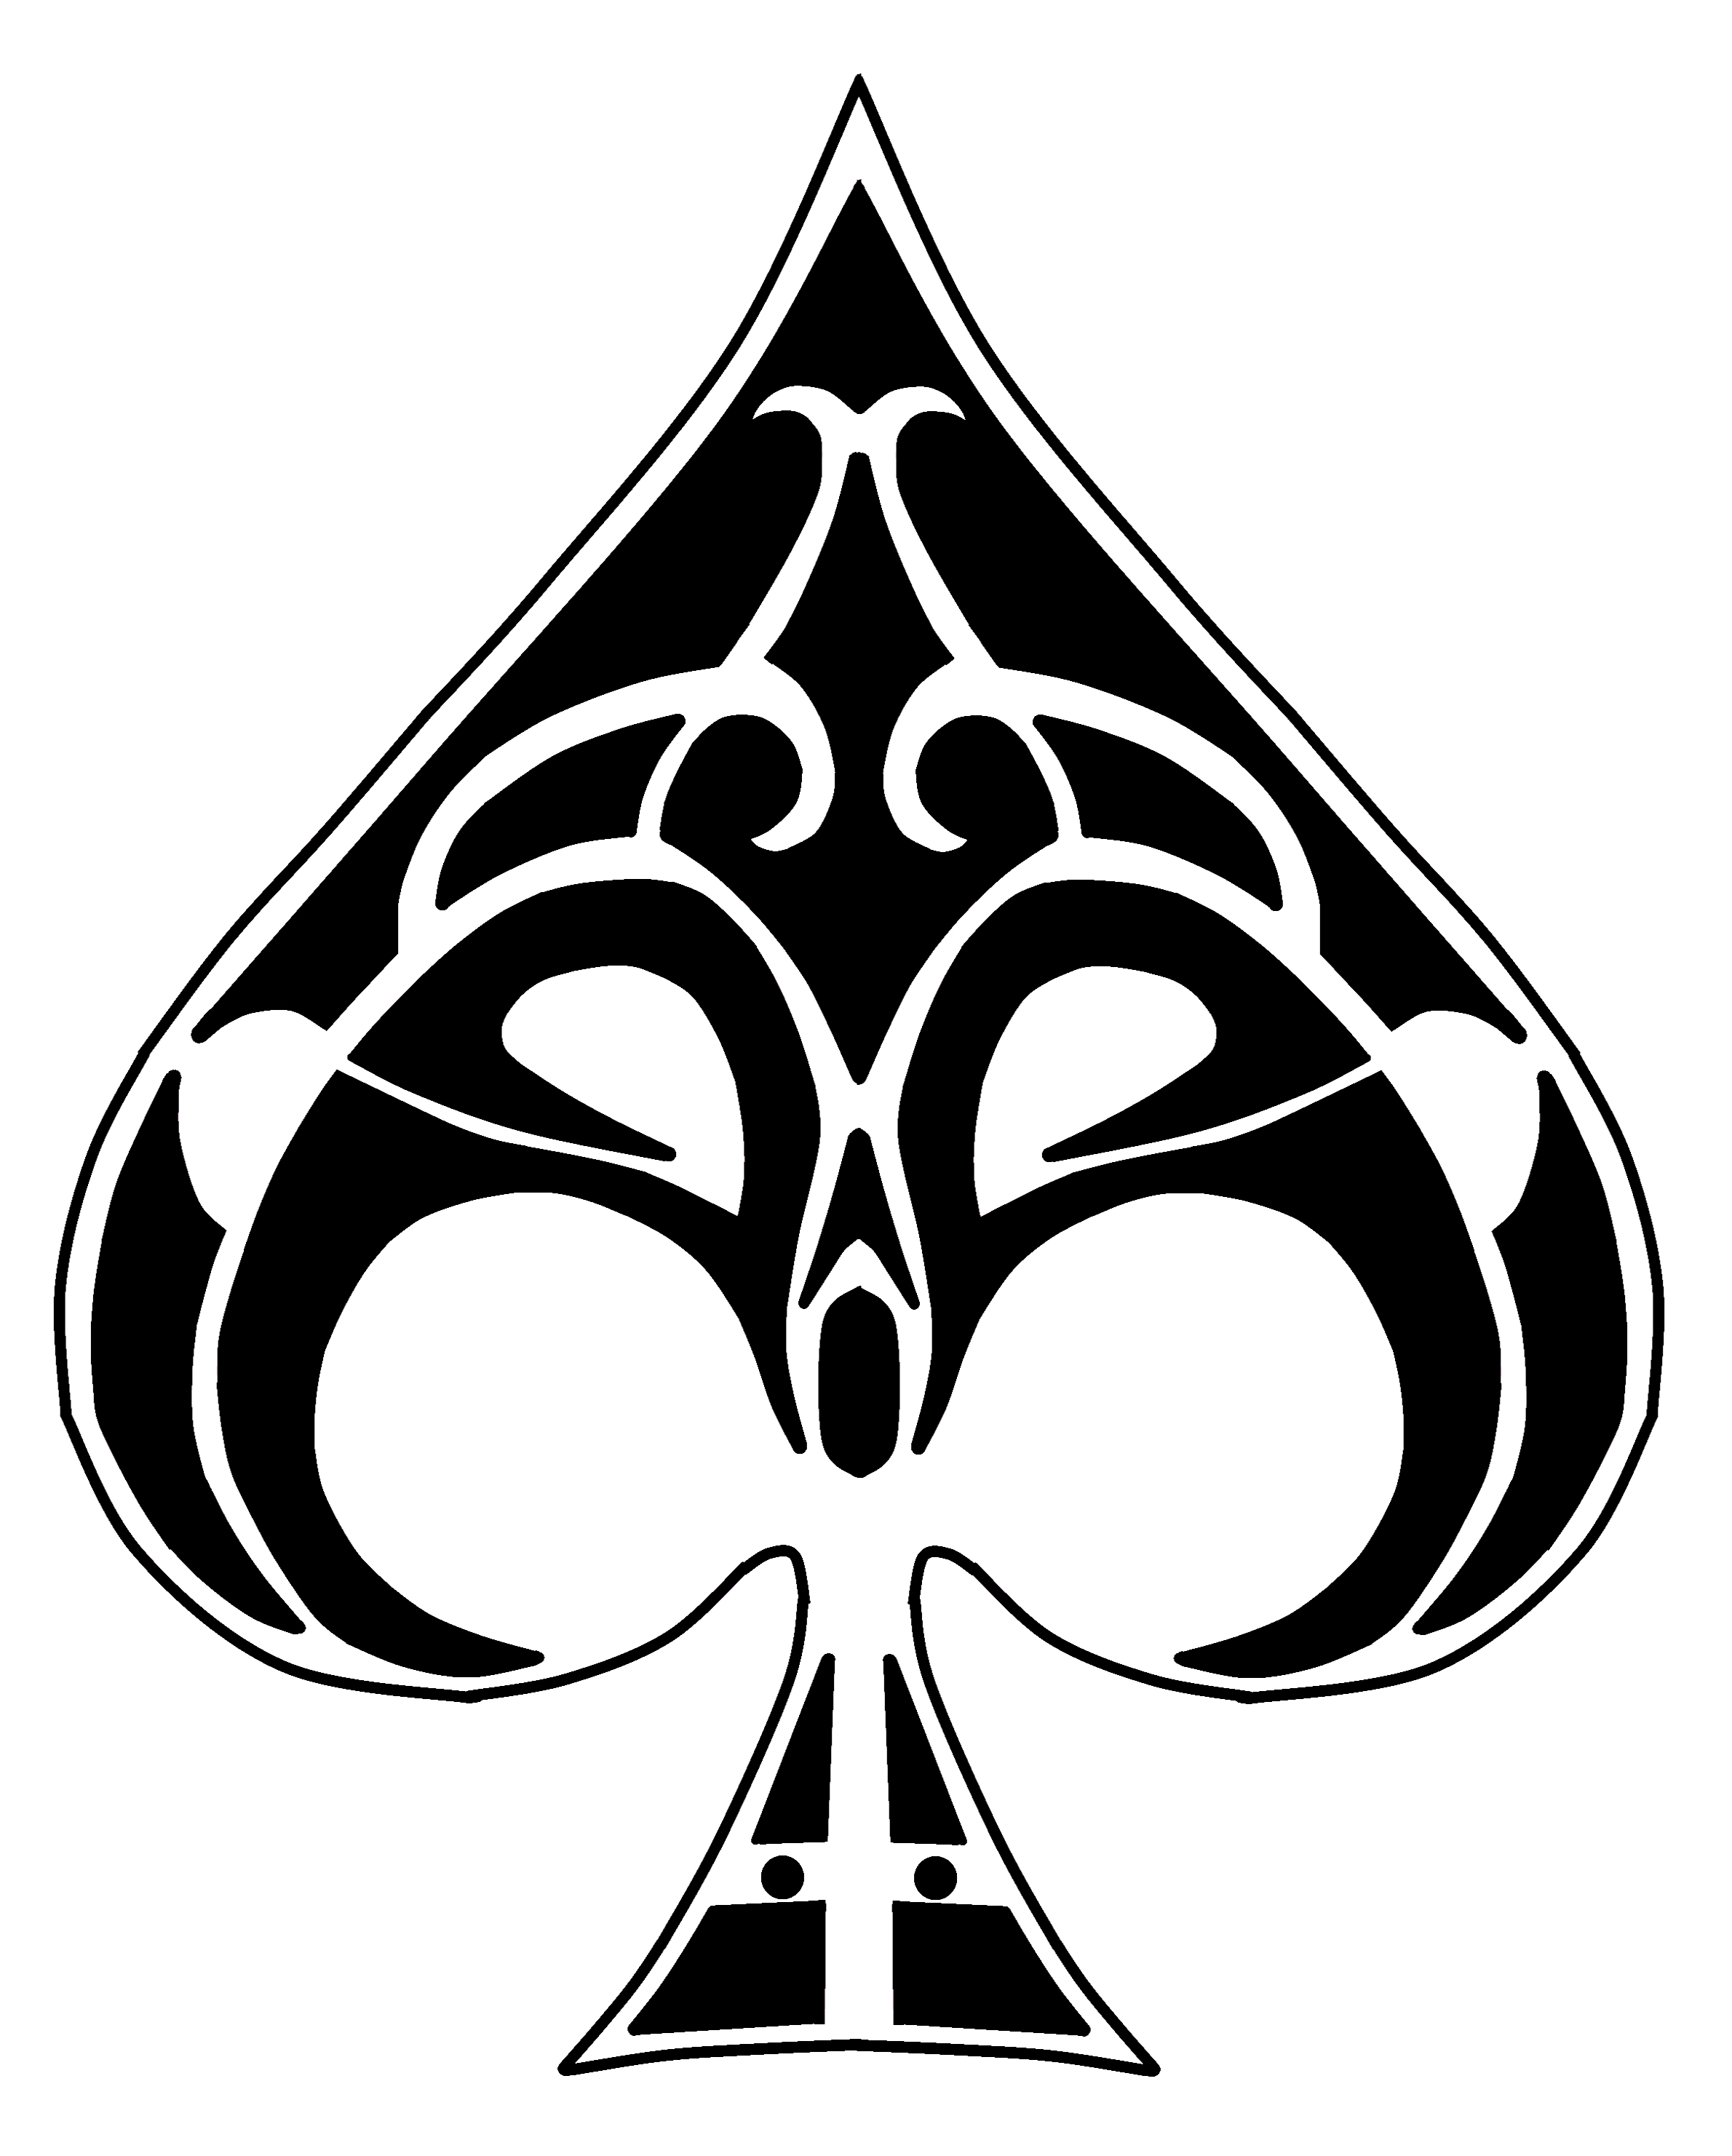 Ace Of Spades Drawing.